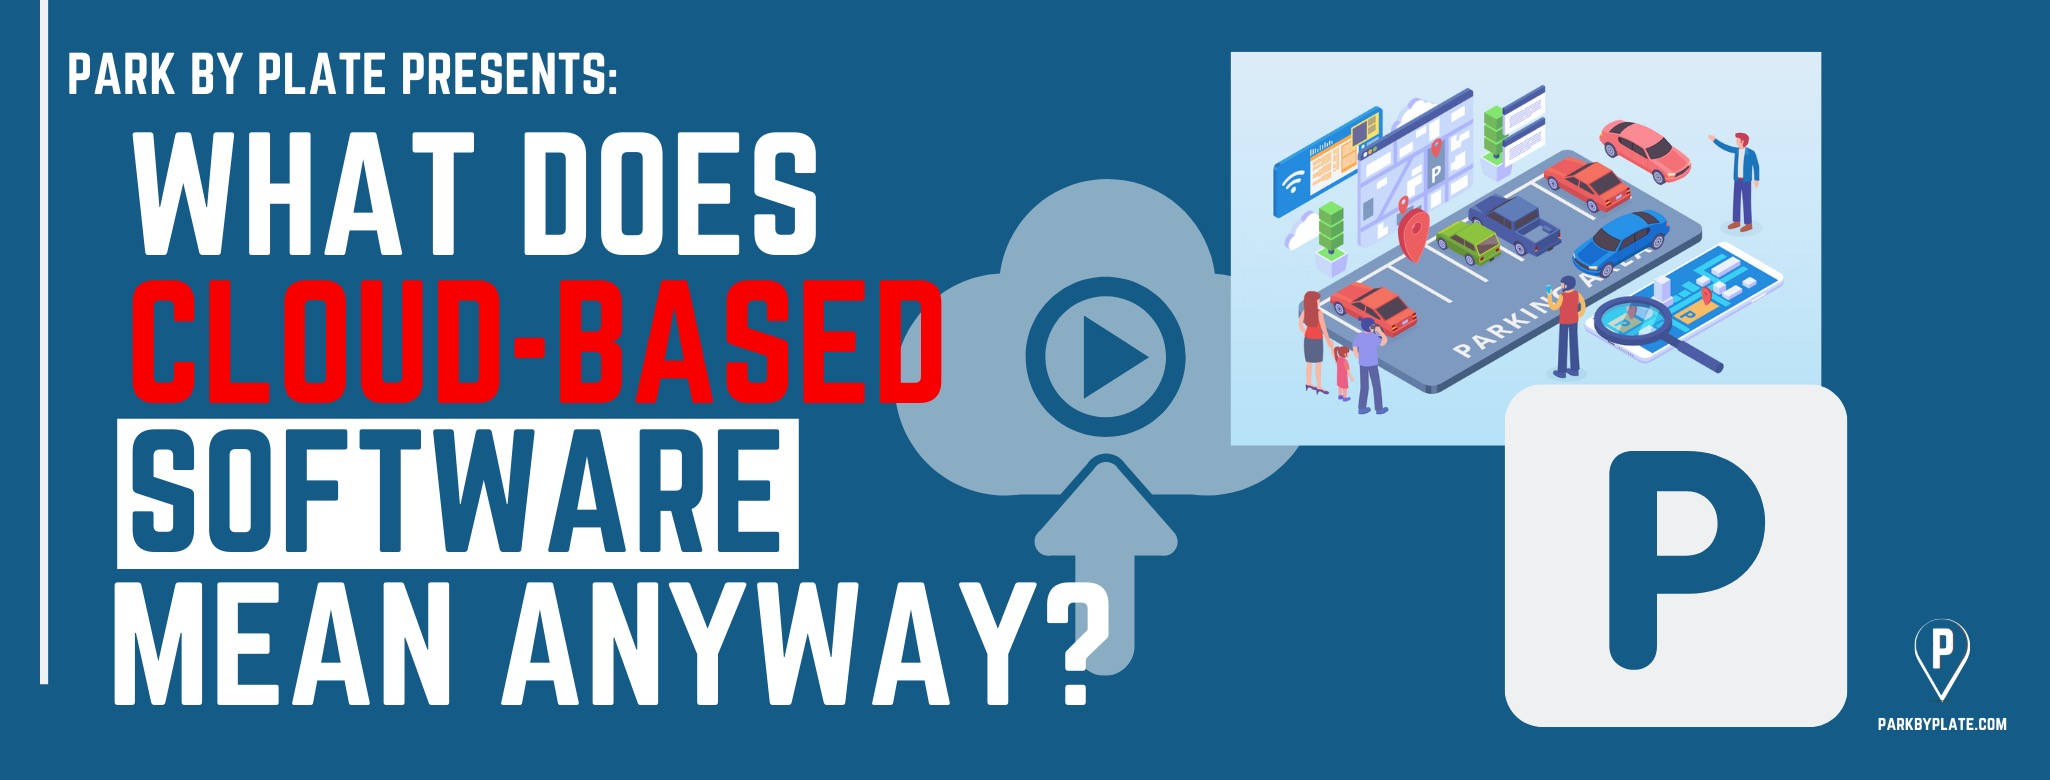 What Does Cloud-Based Software Mean Anyway?